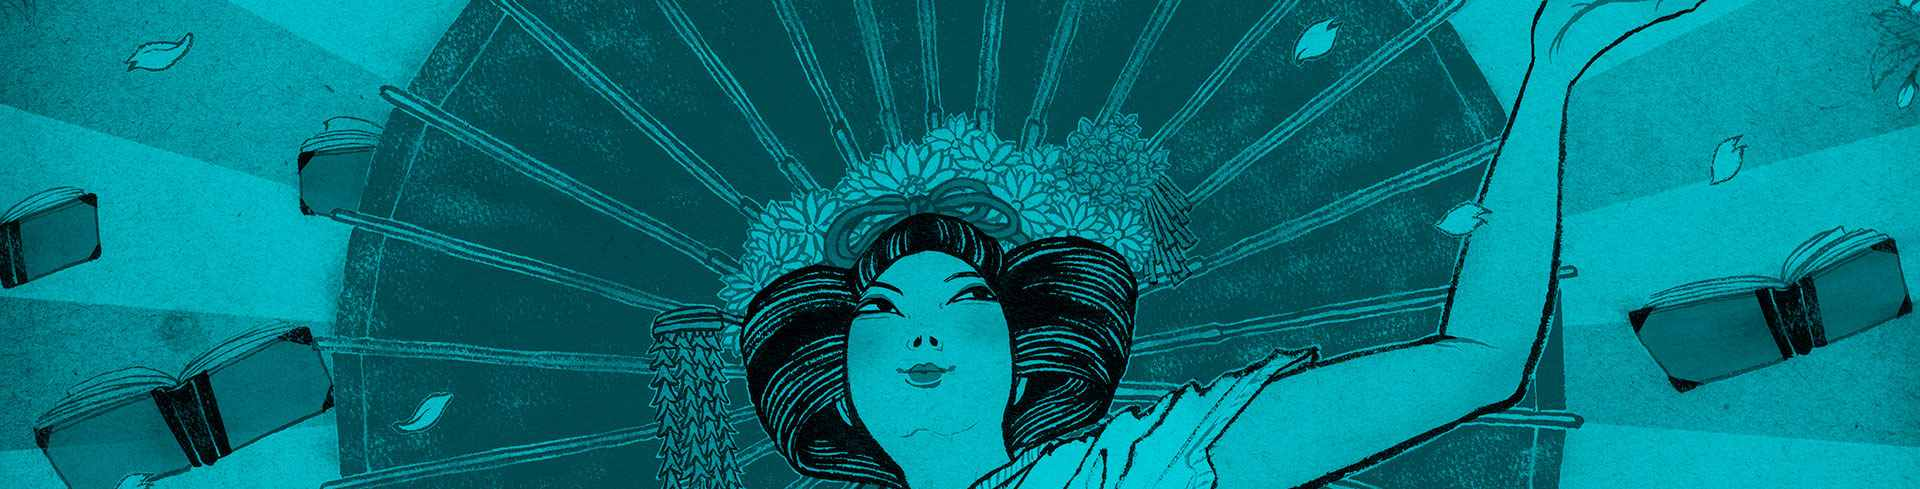 Course Good Ideas make Great Illustration | Yuko Shimizu (Japan)